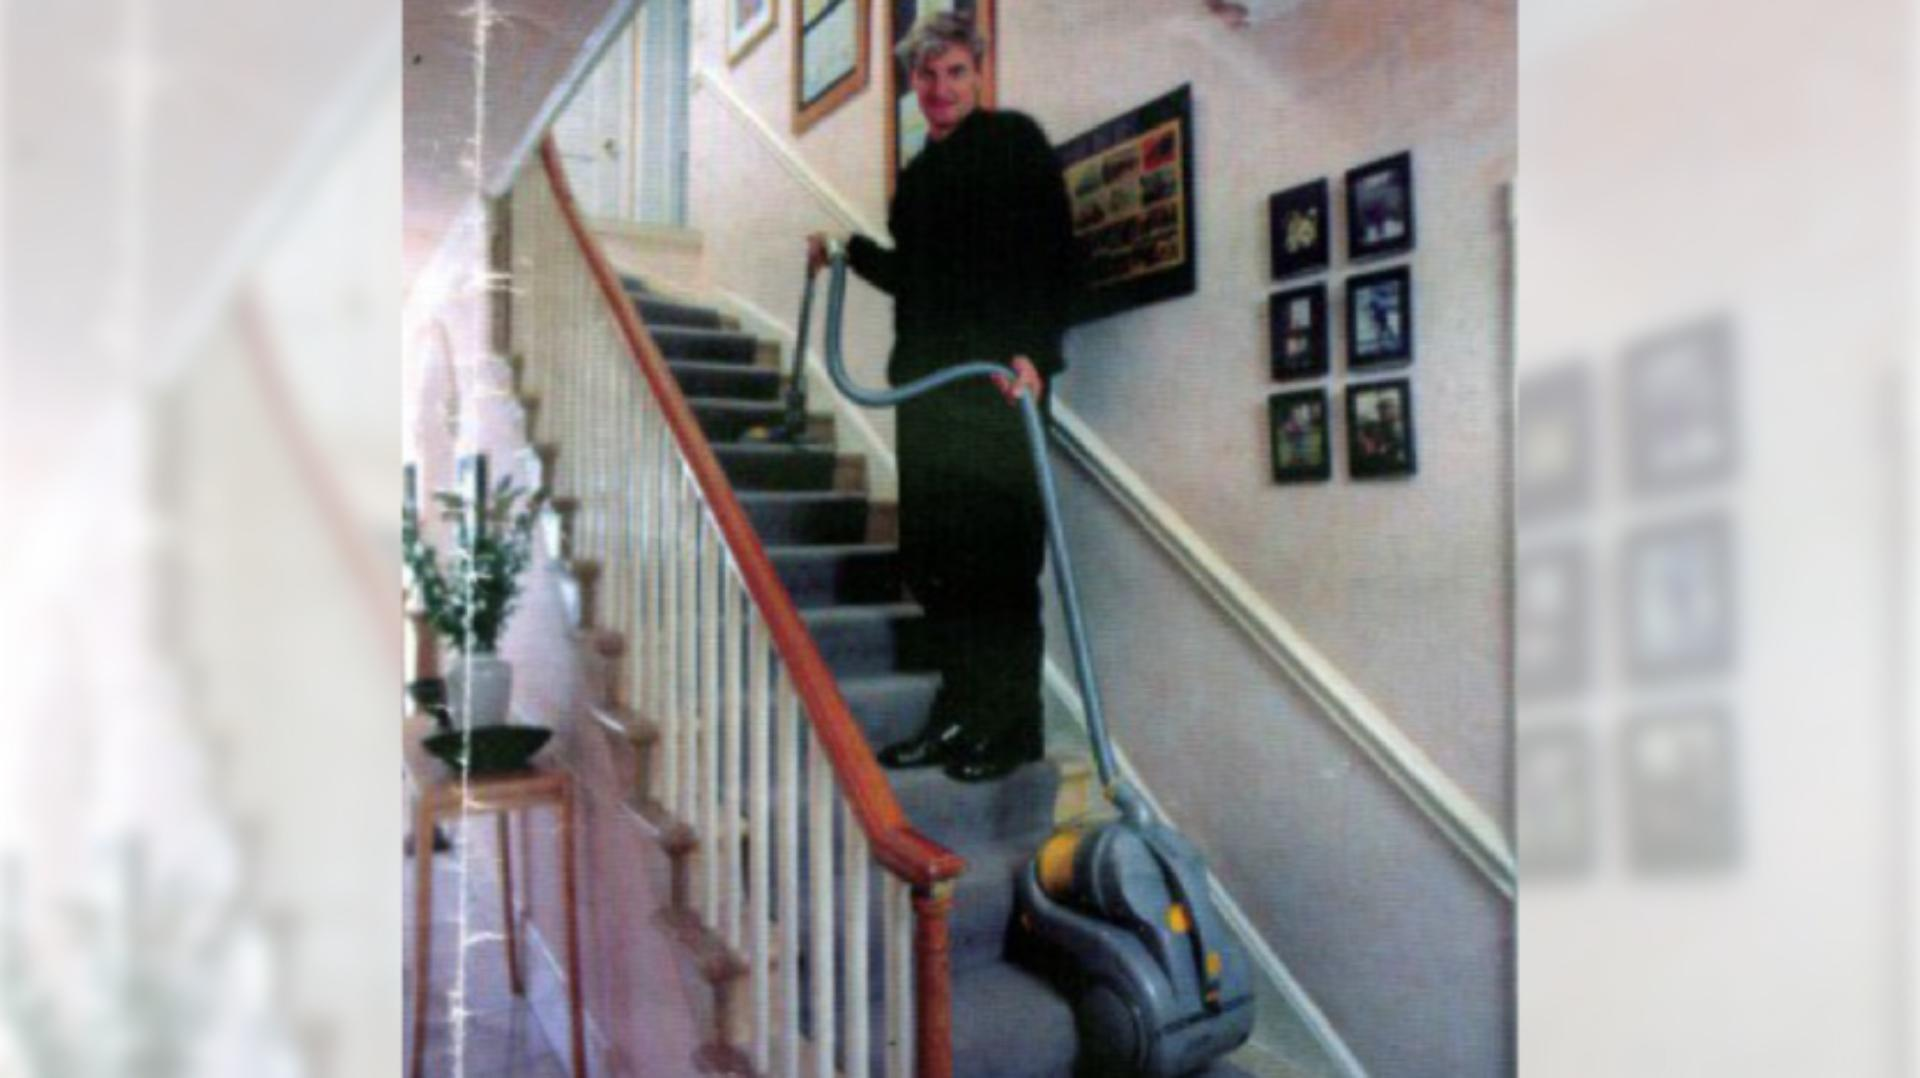 James Dyson standing halfway up the stairs, using the DC02 vacuum with ease